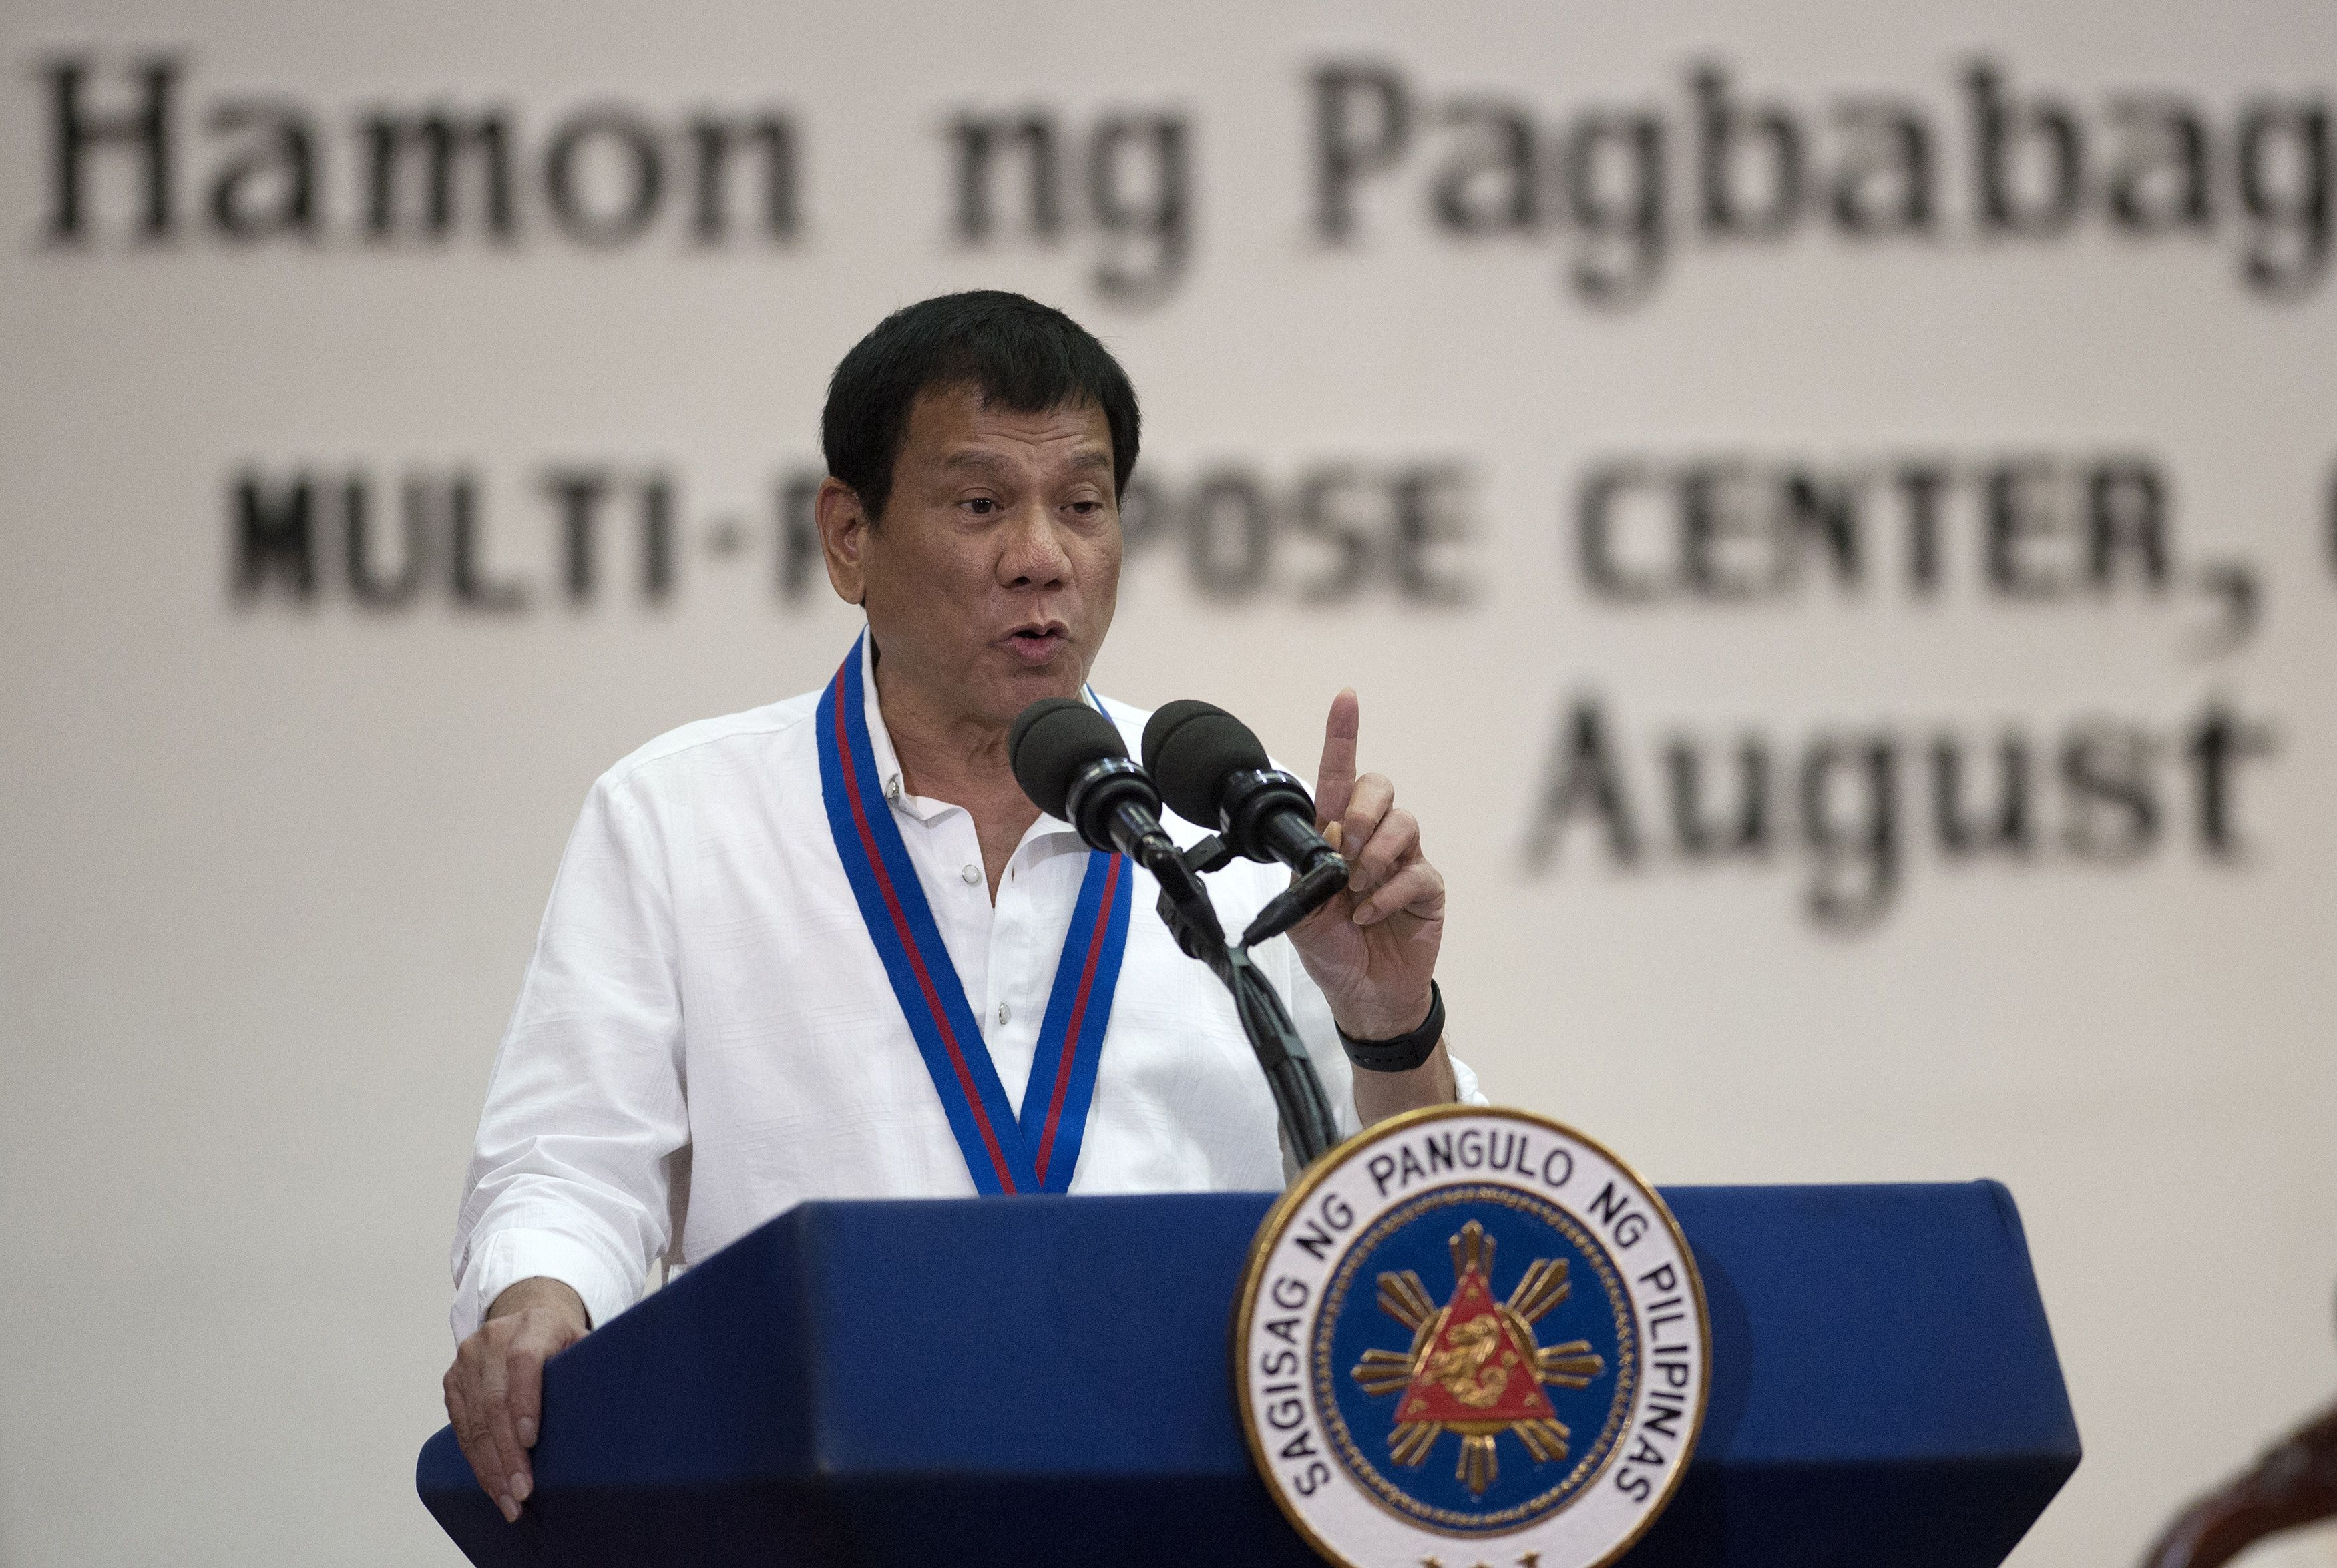 Philippine President Rodrigo Duterte gestures as he talks during the 115th police-service anniversary at the Philippine National Police headquarters in Manila on Aug. 17, 2016